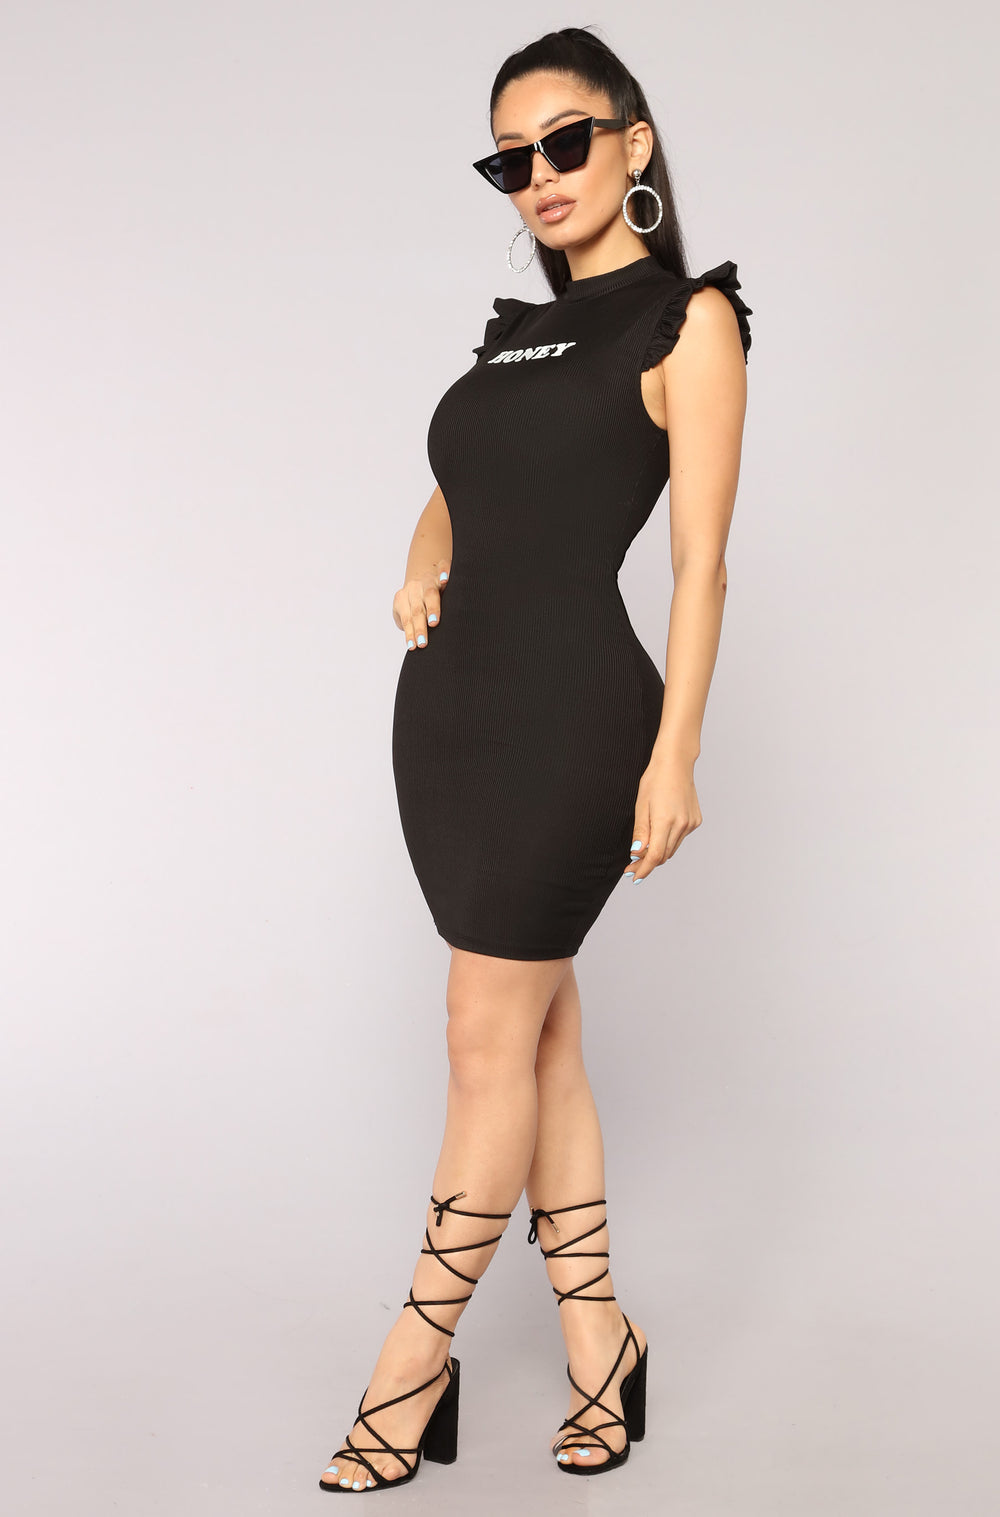 Honey Honey Ribbed Dress - Black